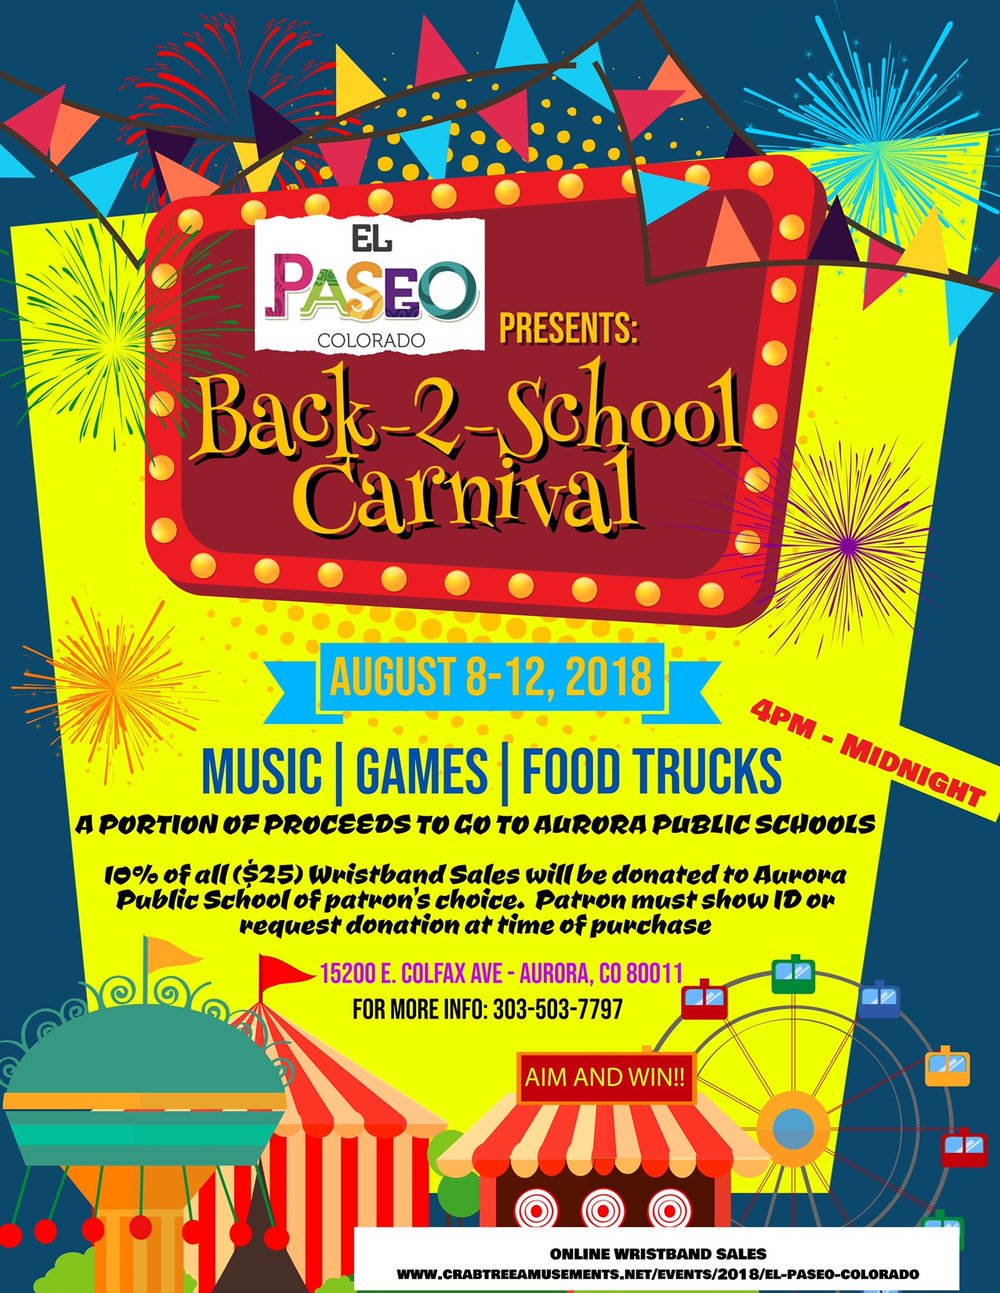 El Paseo Colorado Presents Back-2-School Carnival.JPG